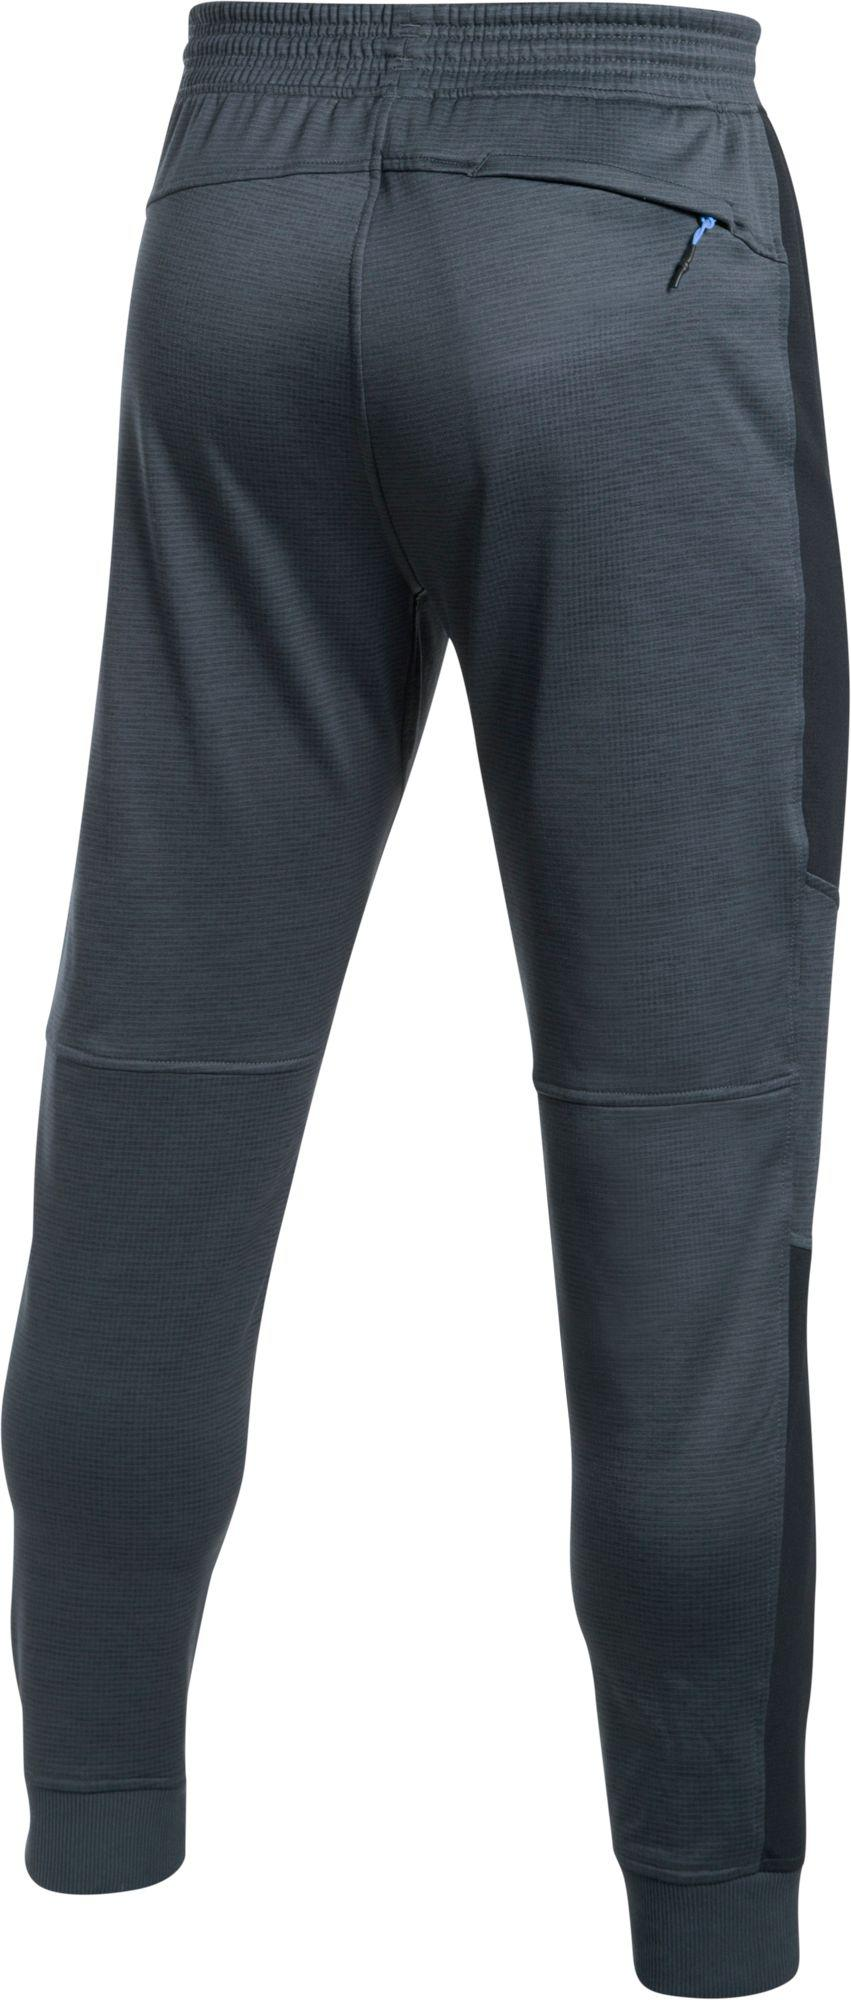 Coldgear Reactor Tapered Pants